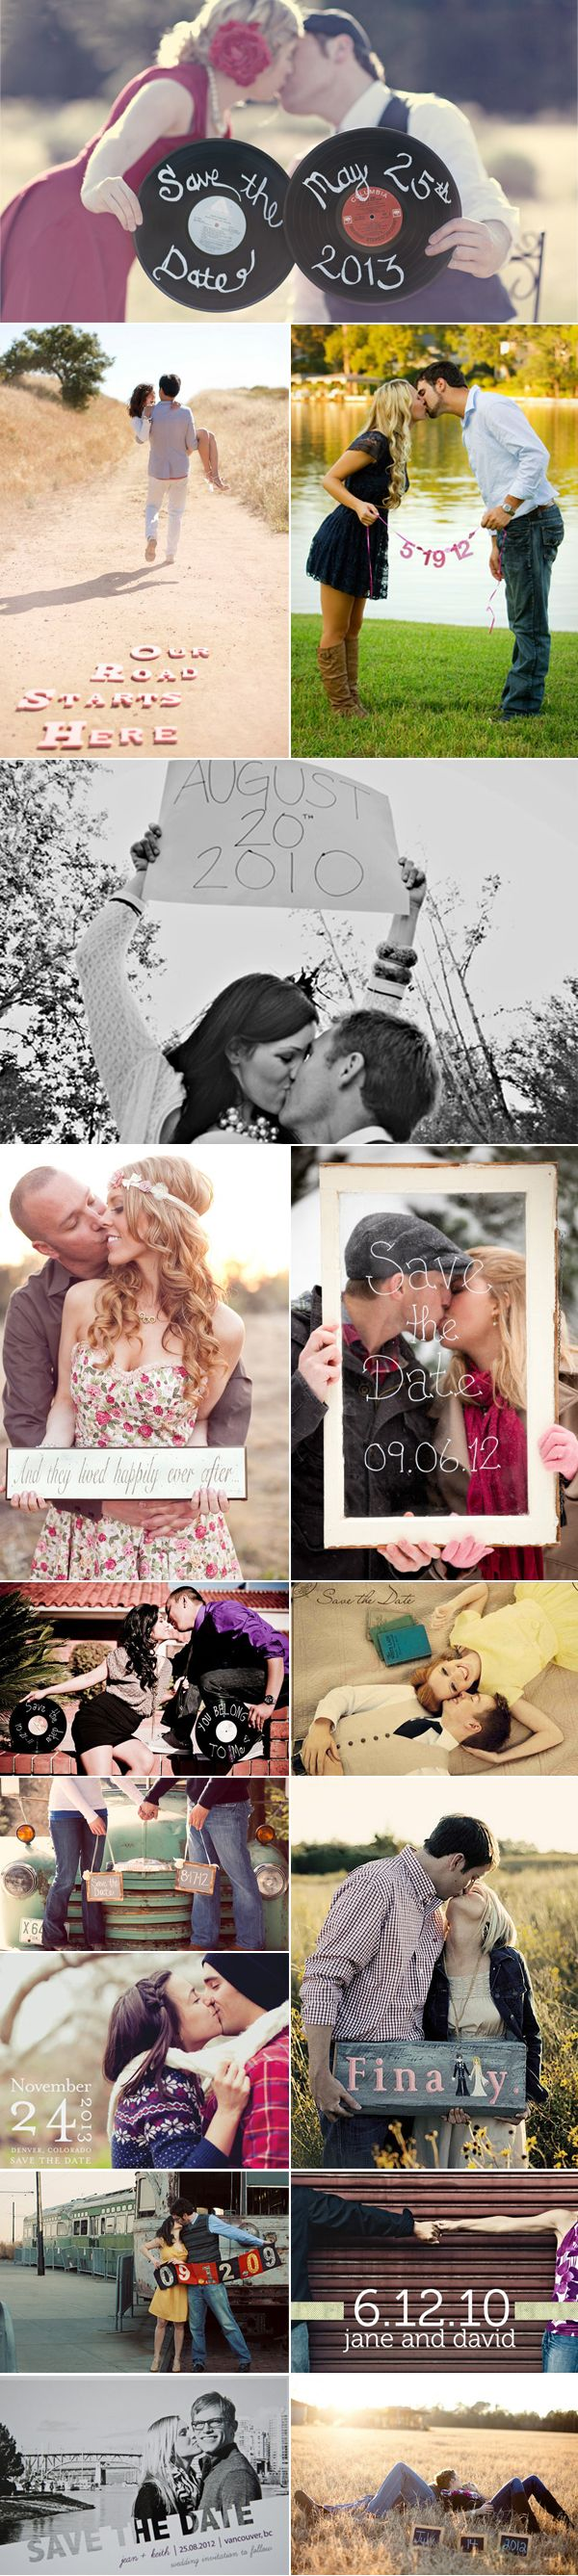 Save the date photos Omg I love the one that says our road starts here!